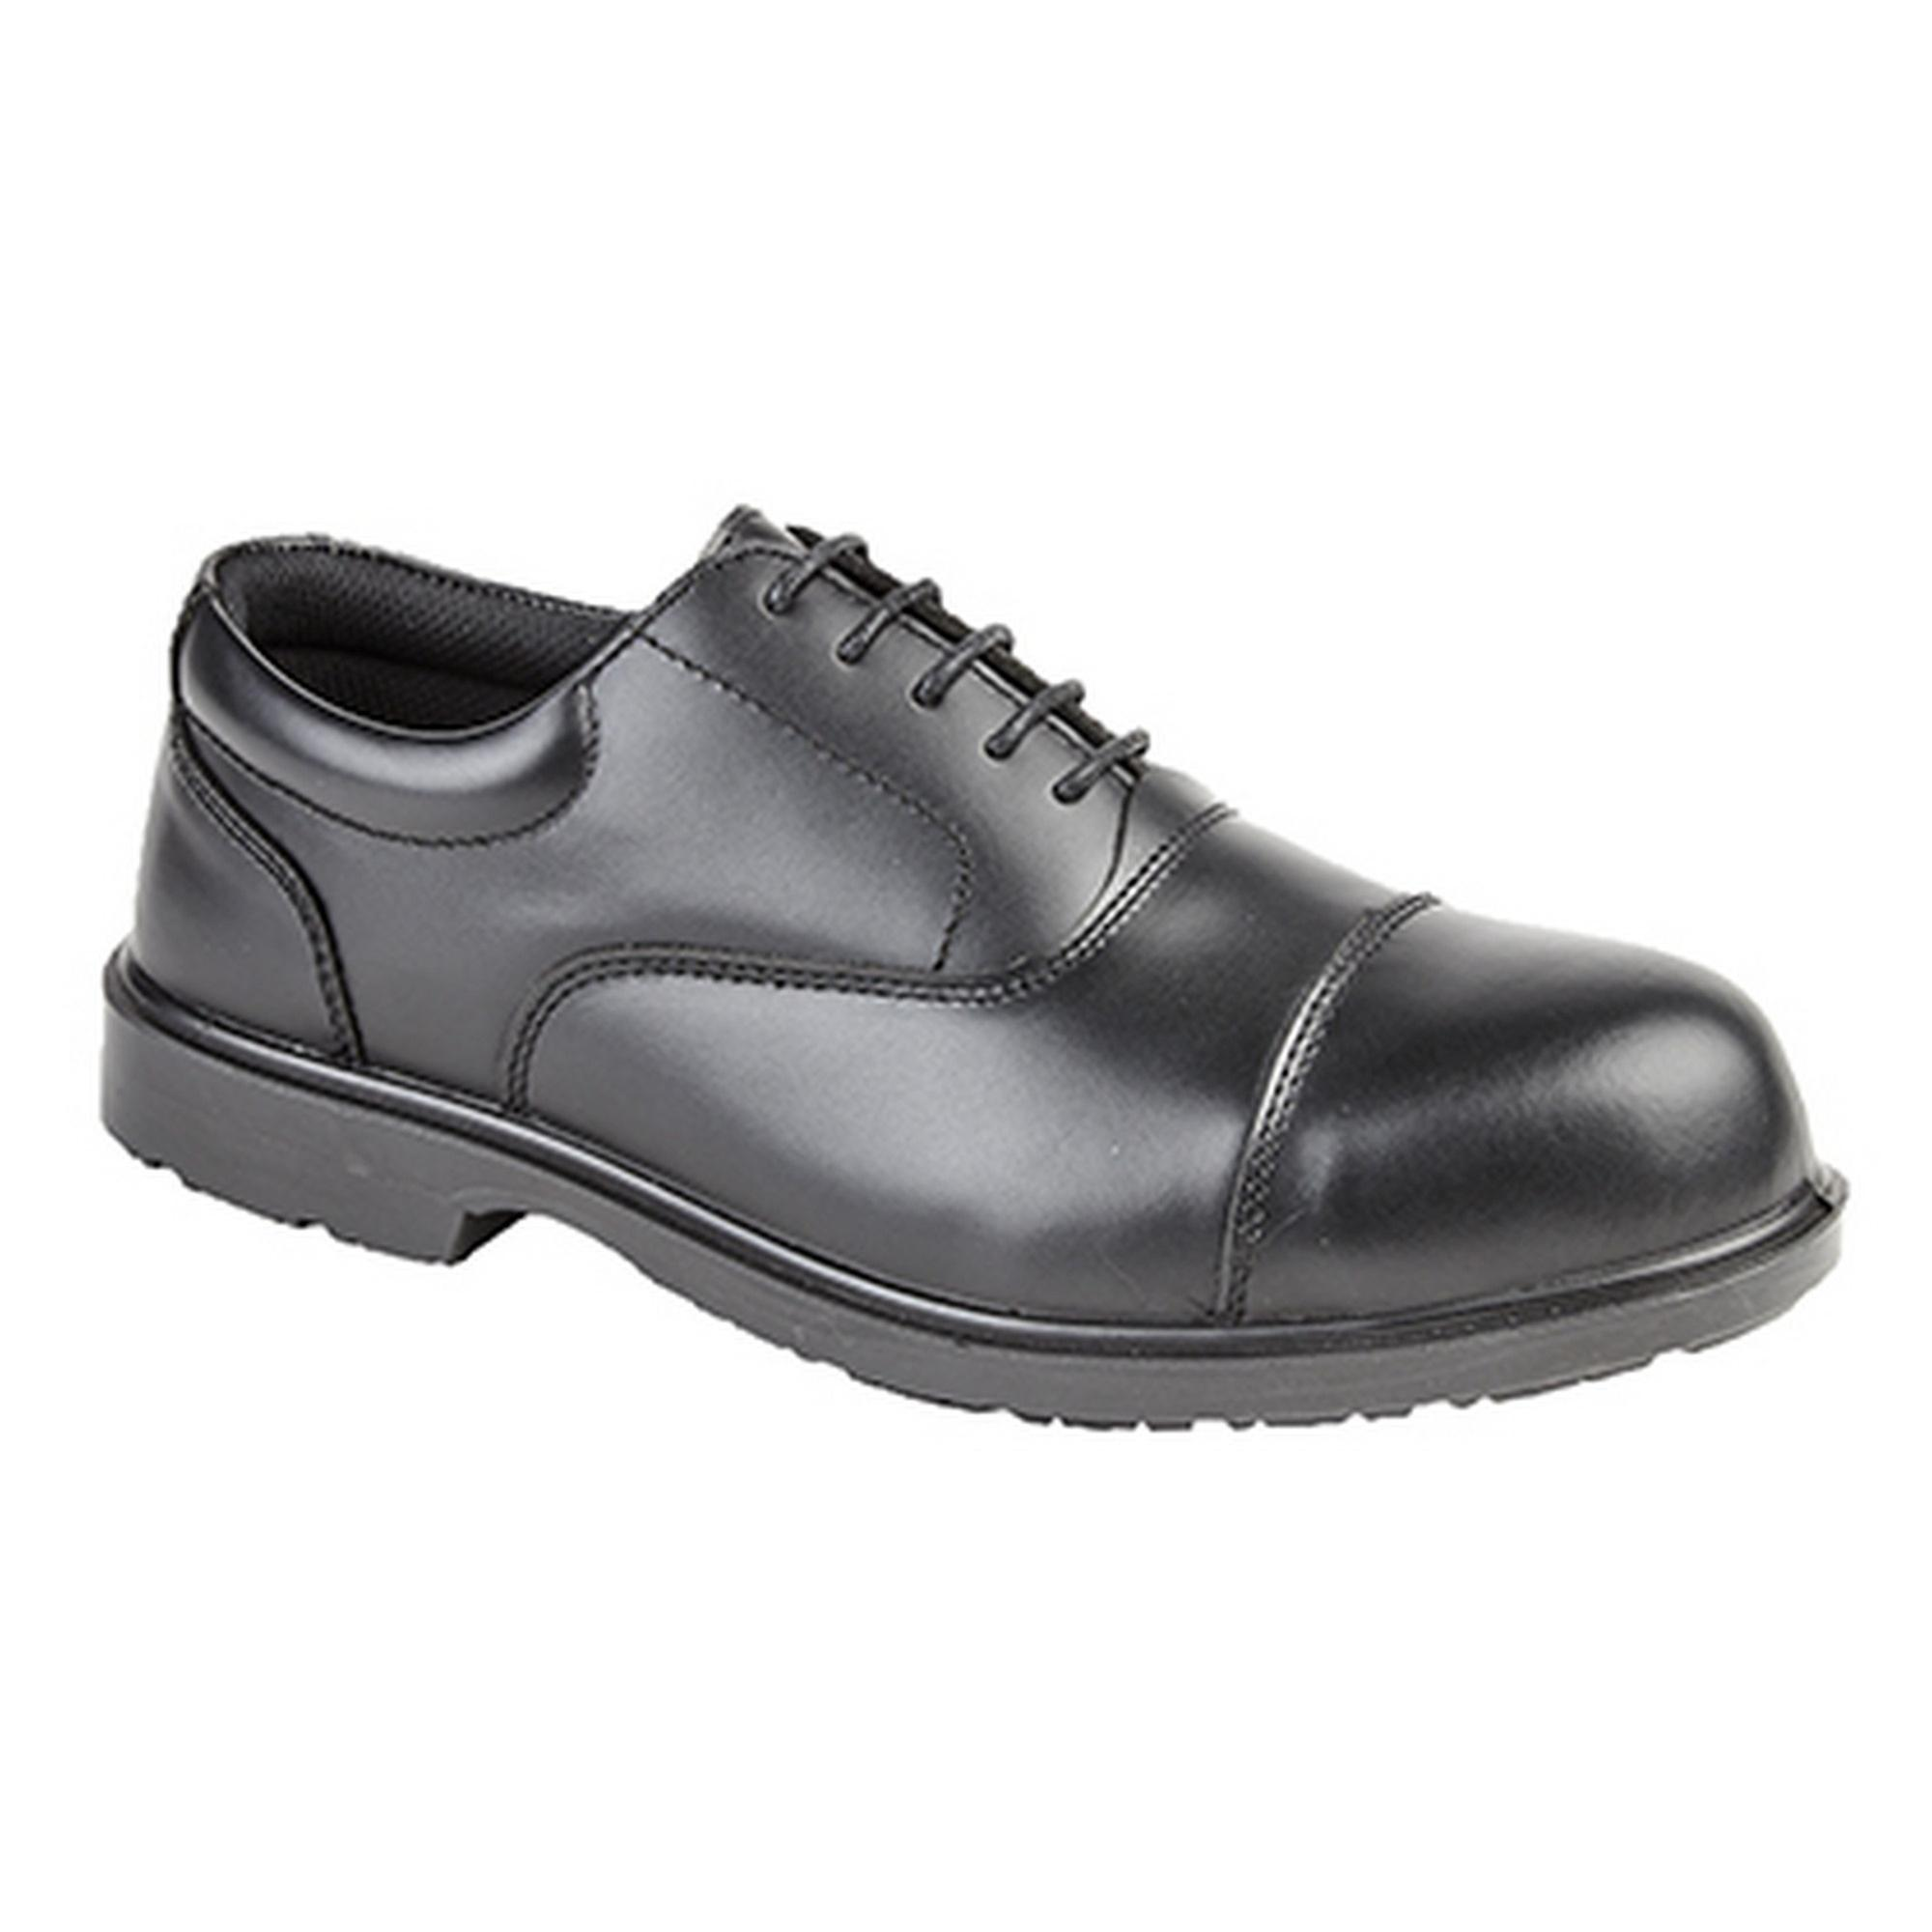 Grafters Mens Uniform Fully Composite Non-Metal Safety Oxford Shoes